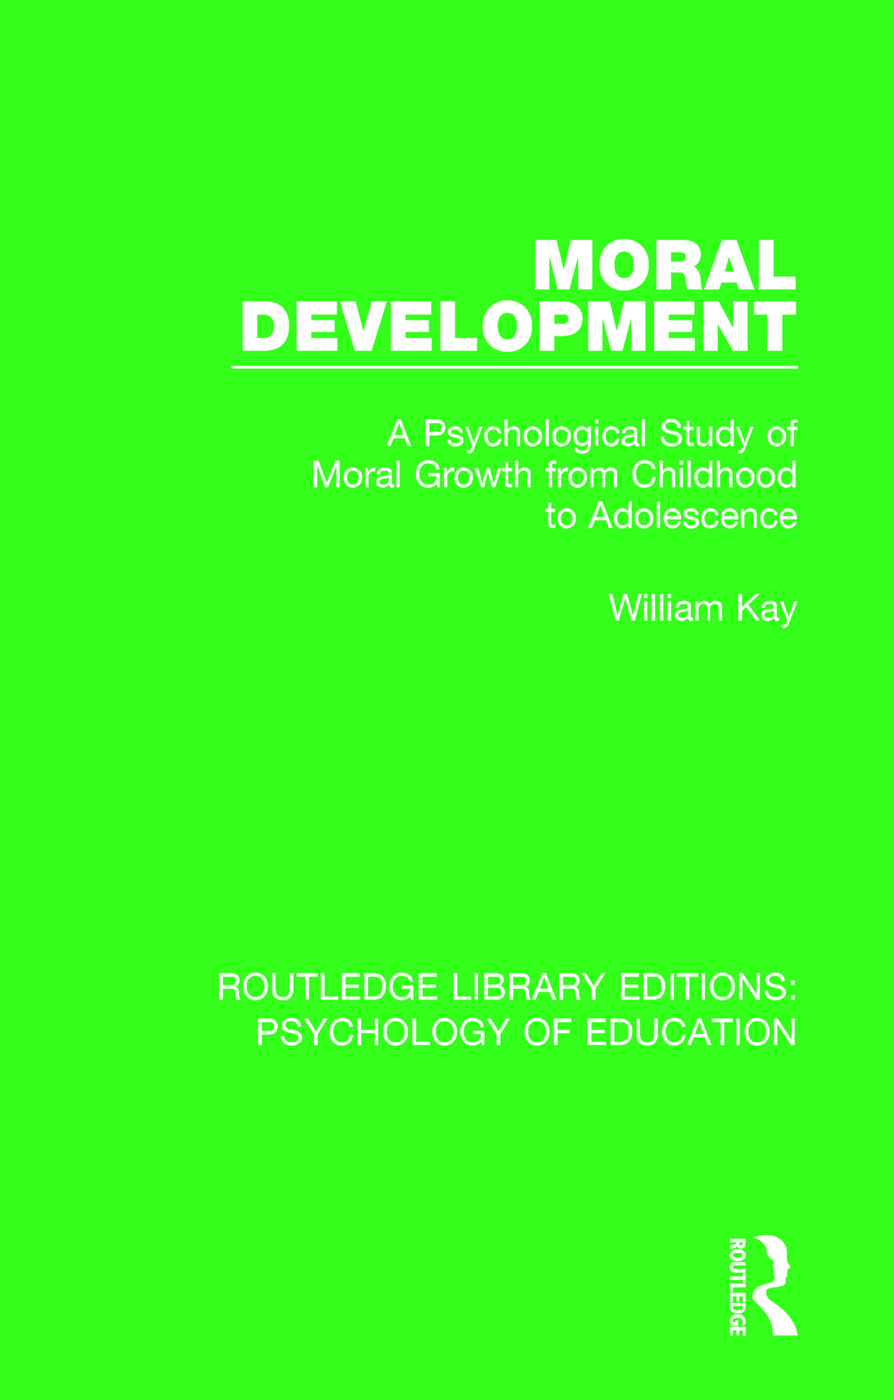 Moral Development: A Psychological Study of Moral Growth from Childhood to Adolescence book cover